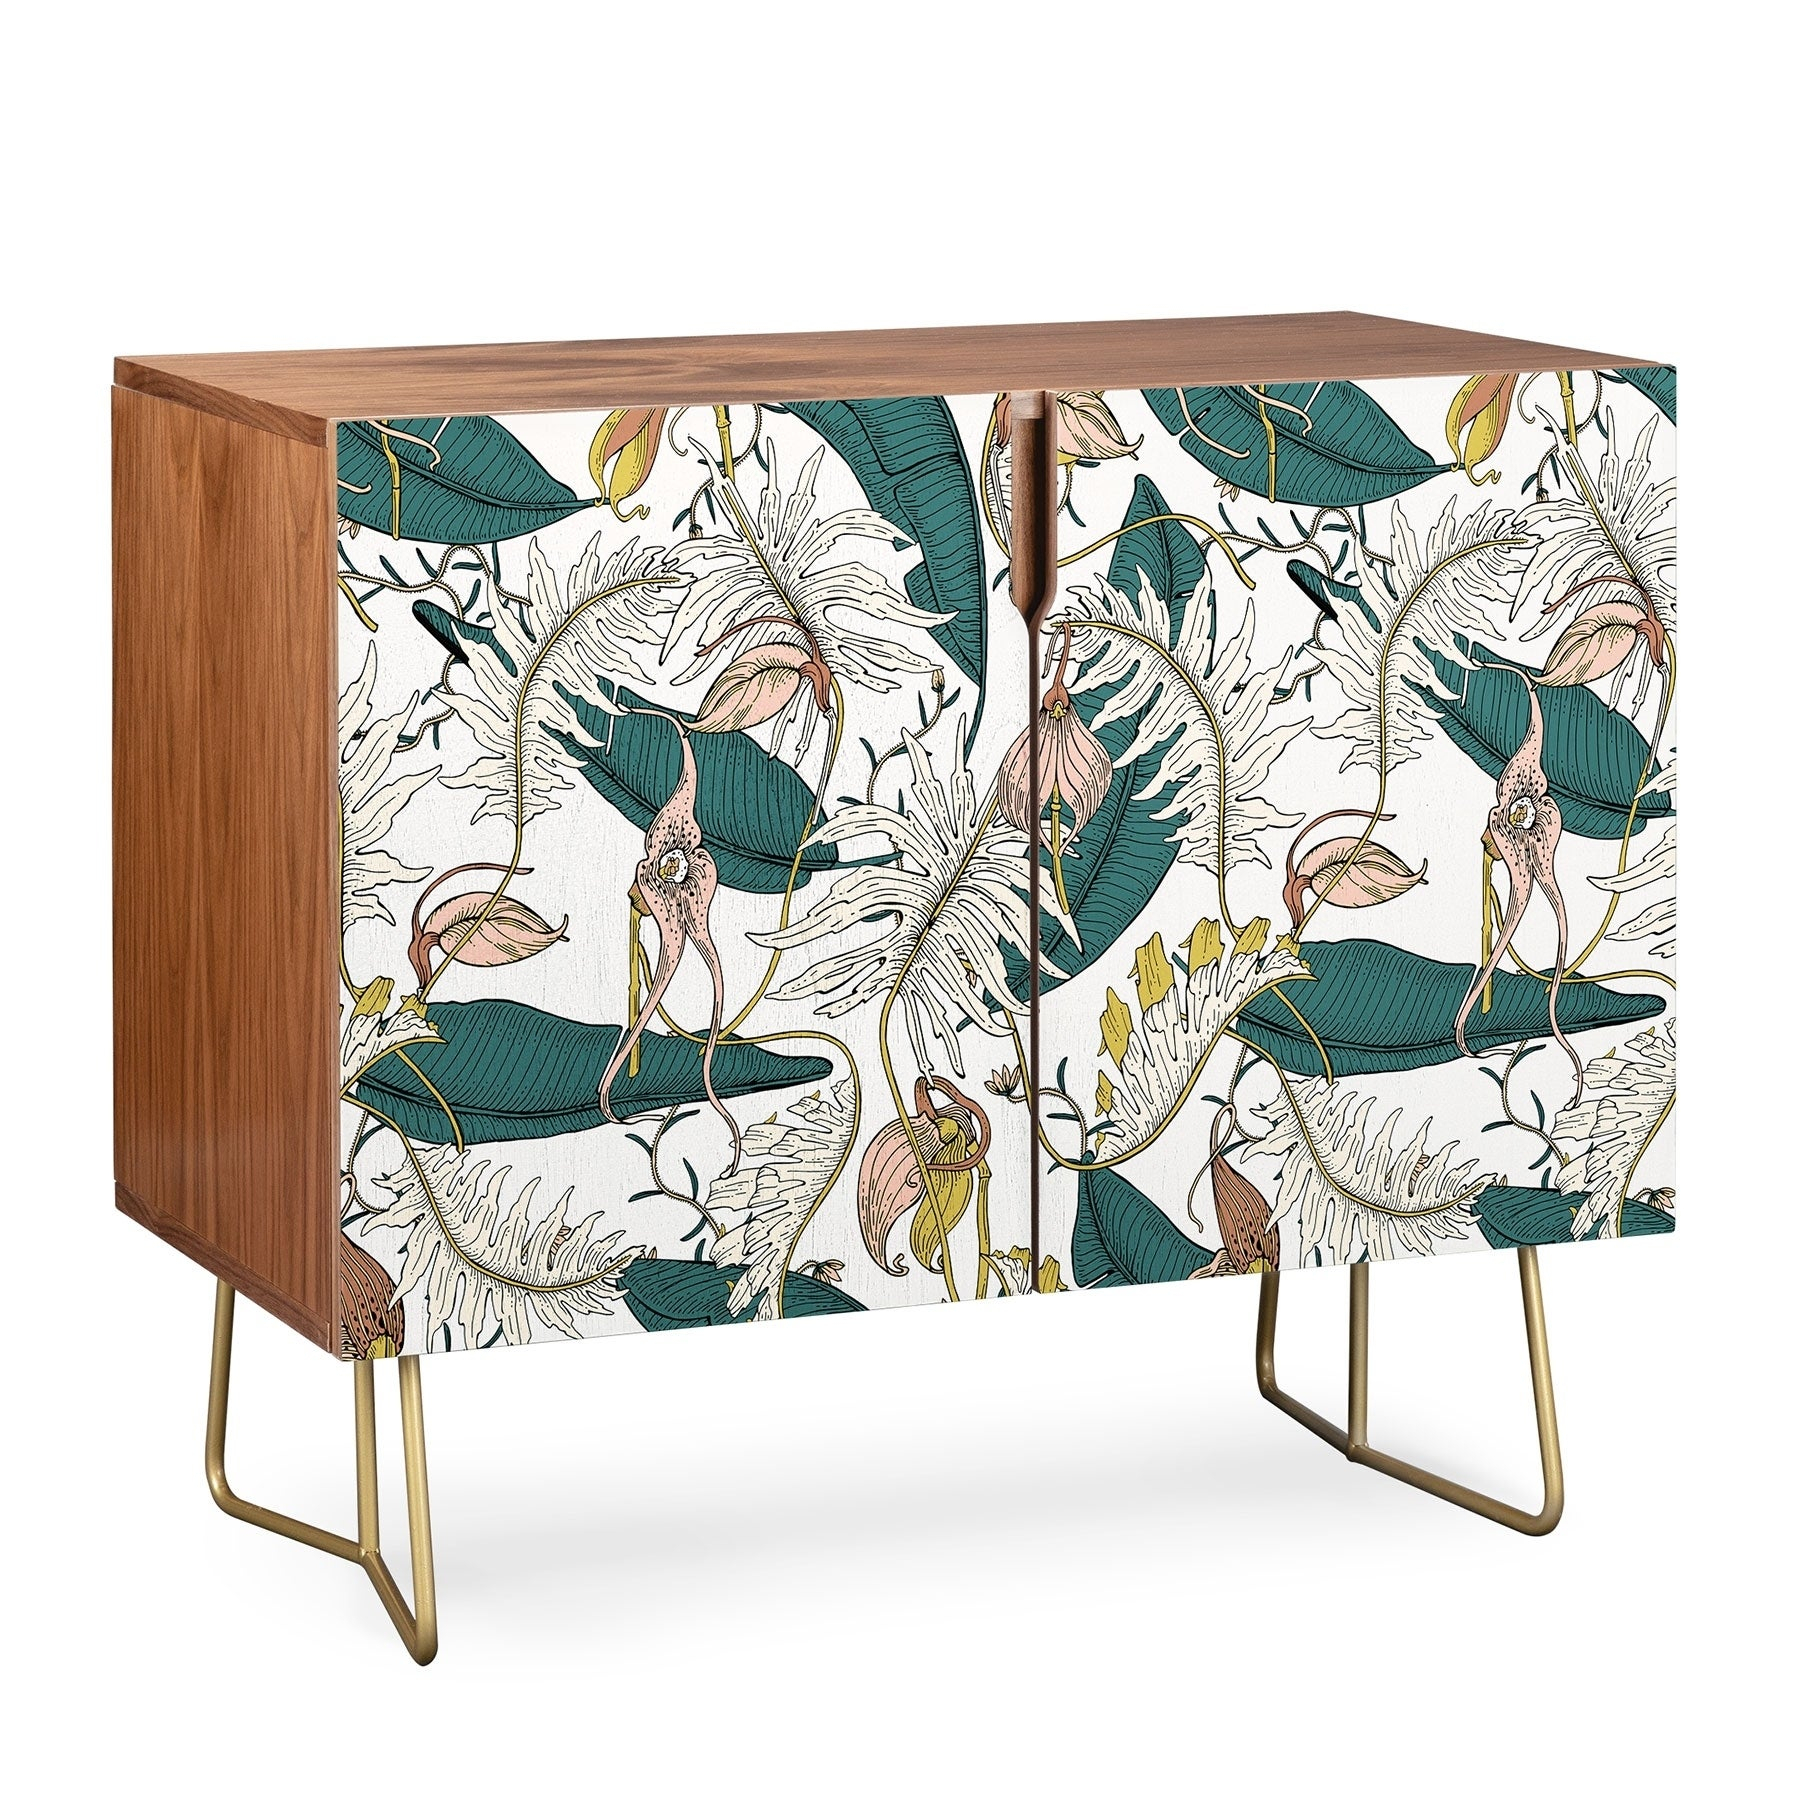 Deny Designs Garden Amora Multicolor Wood Credenza Inside Fleurette Night Credenzas (Gallery 18 of 30)